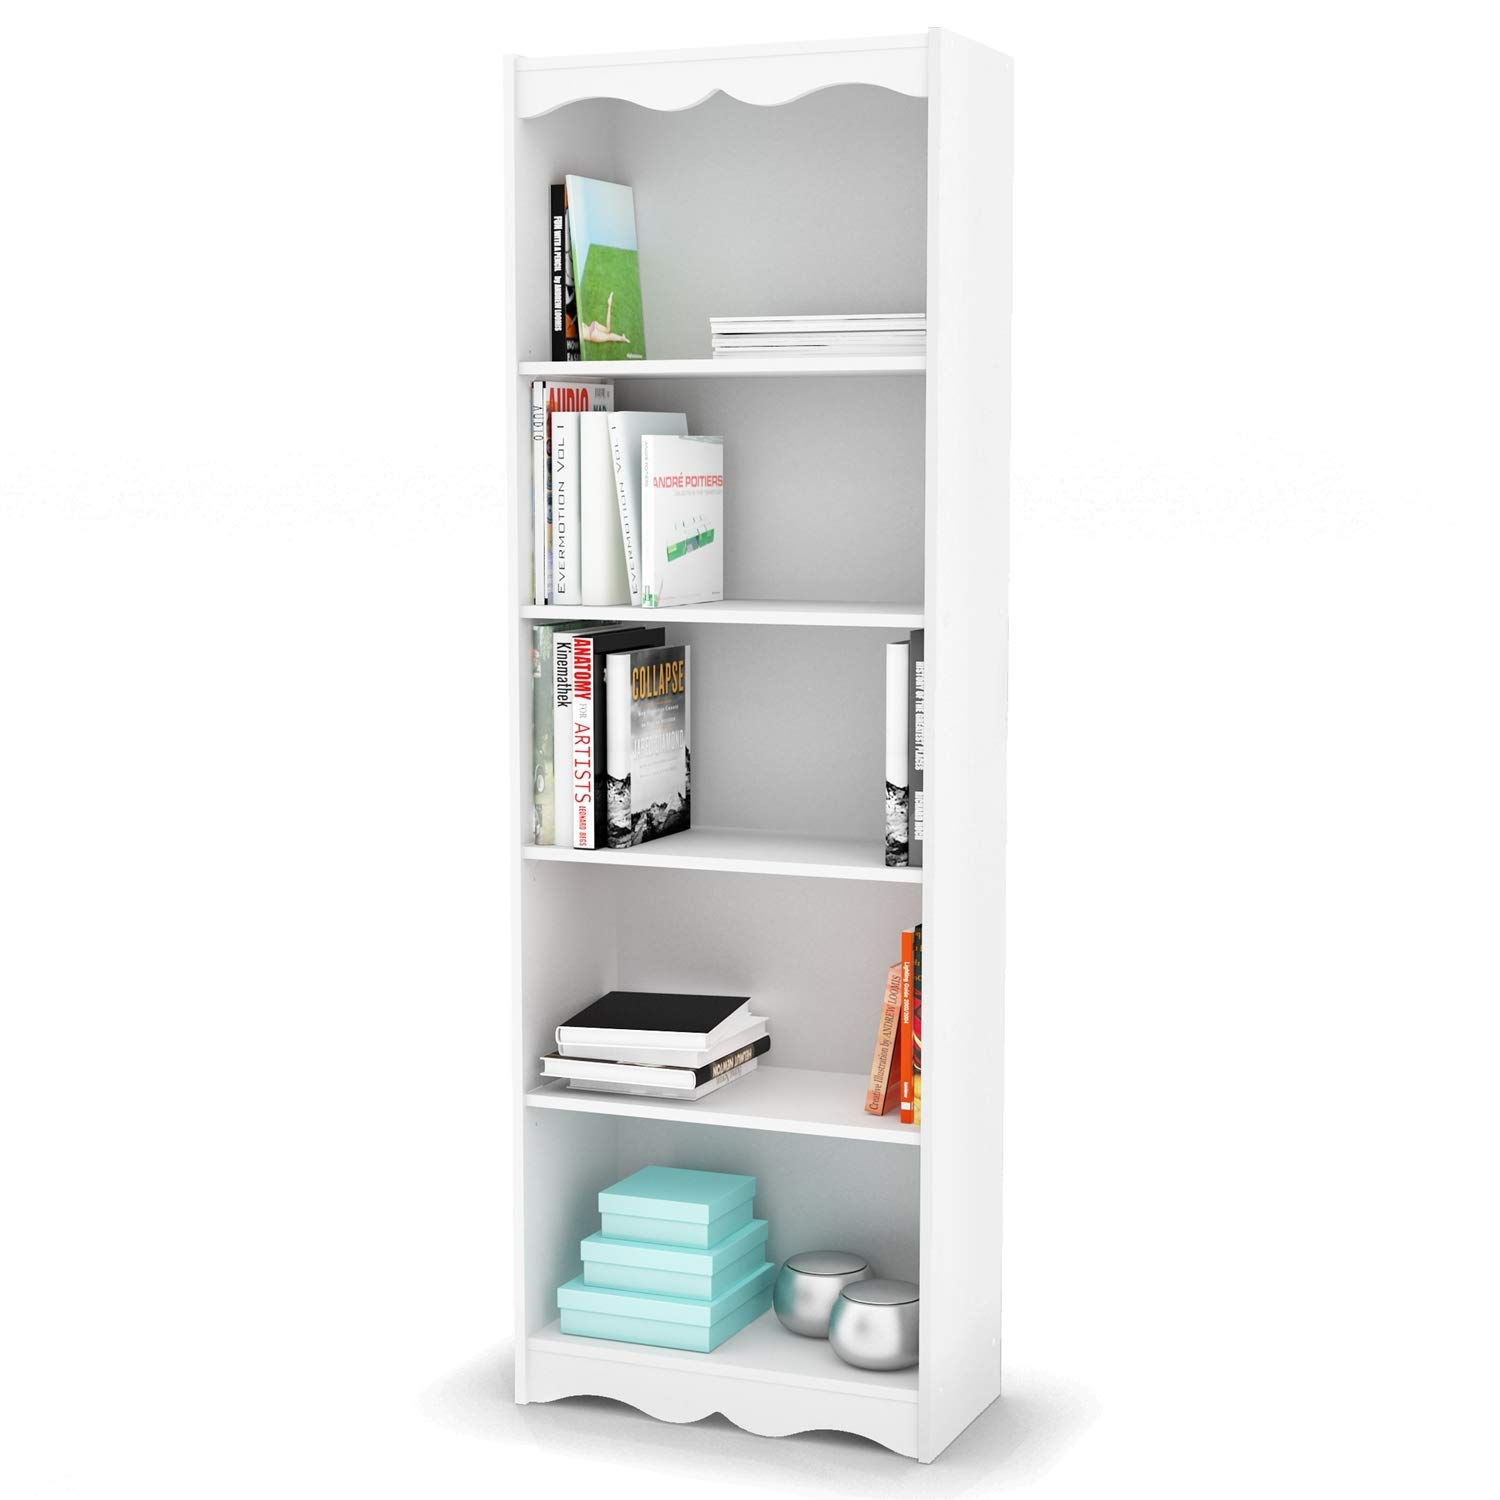 Trustpurchase White 72-inch High Bookcase with Soft Arches and 5 Shelves, with The Soft Arches and Beautiful Open Shelves of This White 72-inch High Bookcase with Soft Arches and 5 Shelves